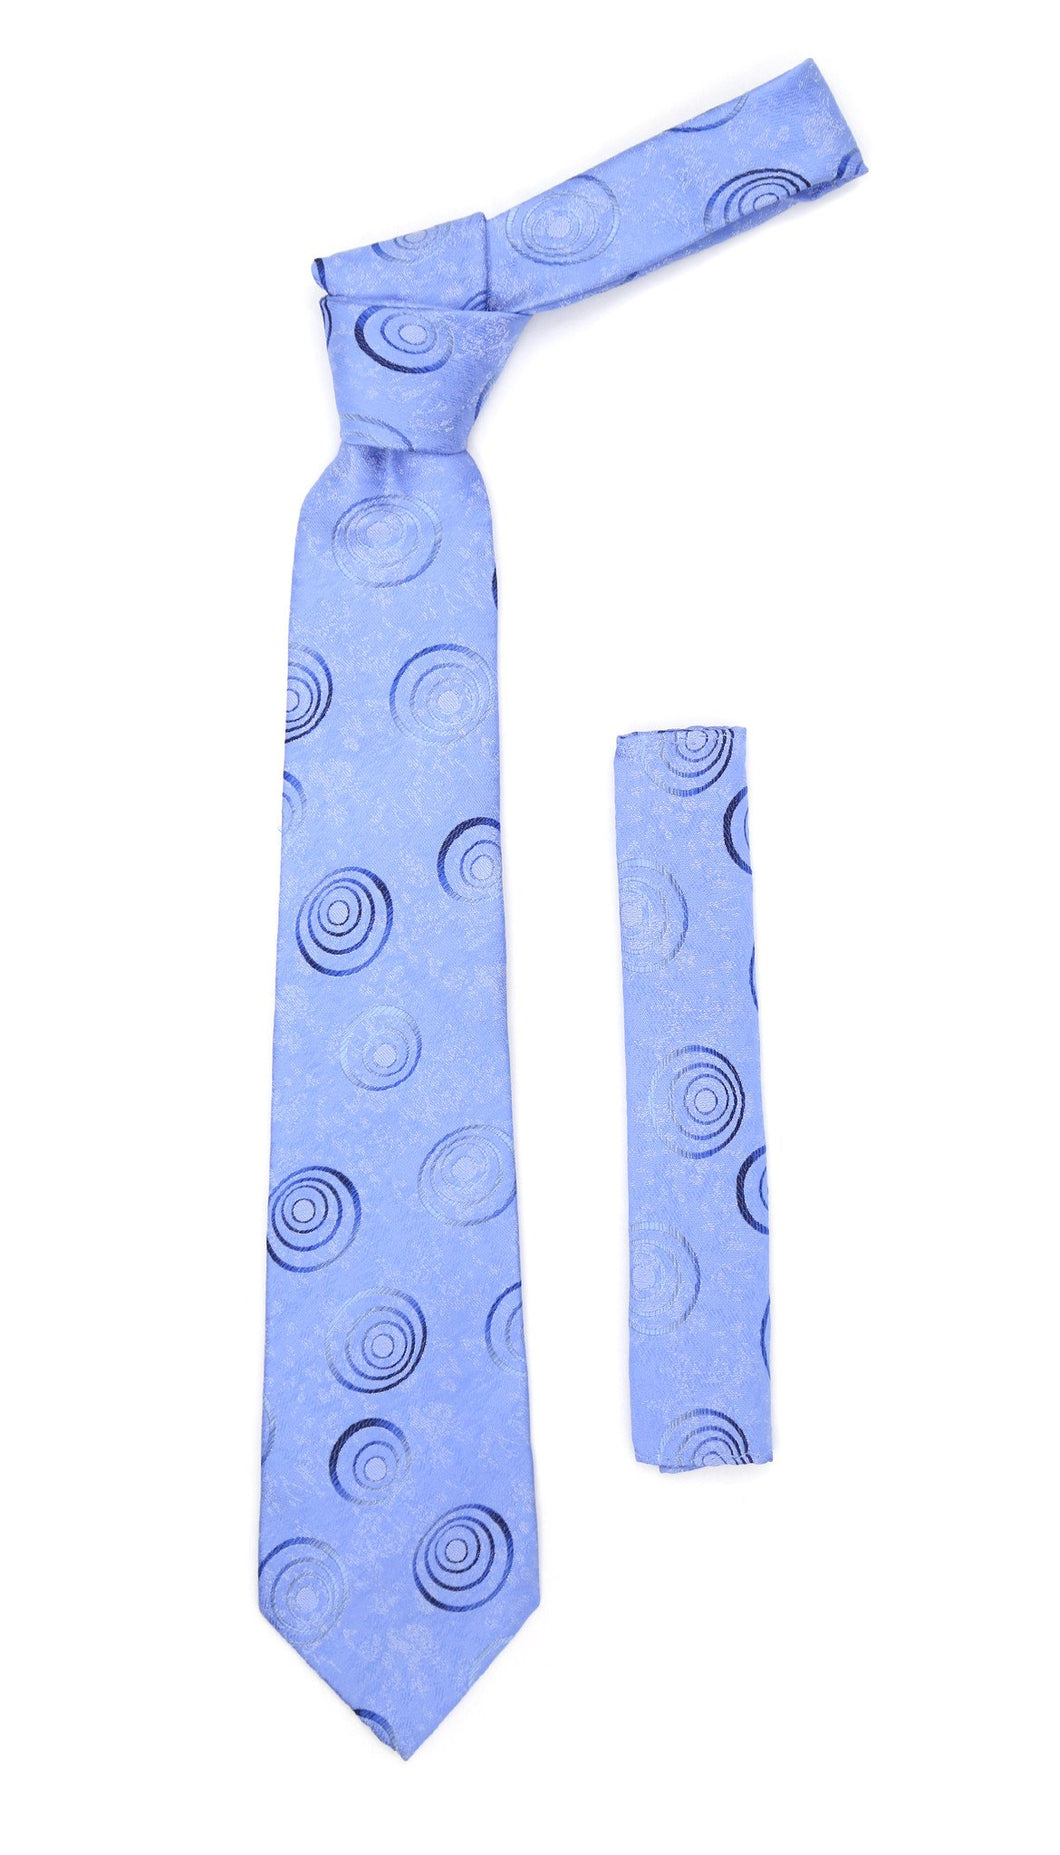 Sky Blue Swirl Design Necktie with Handkerchief Set - Ferrecci USA